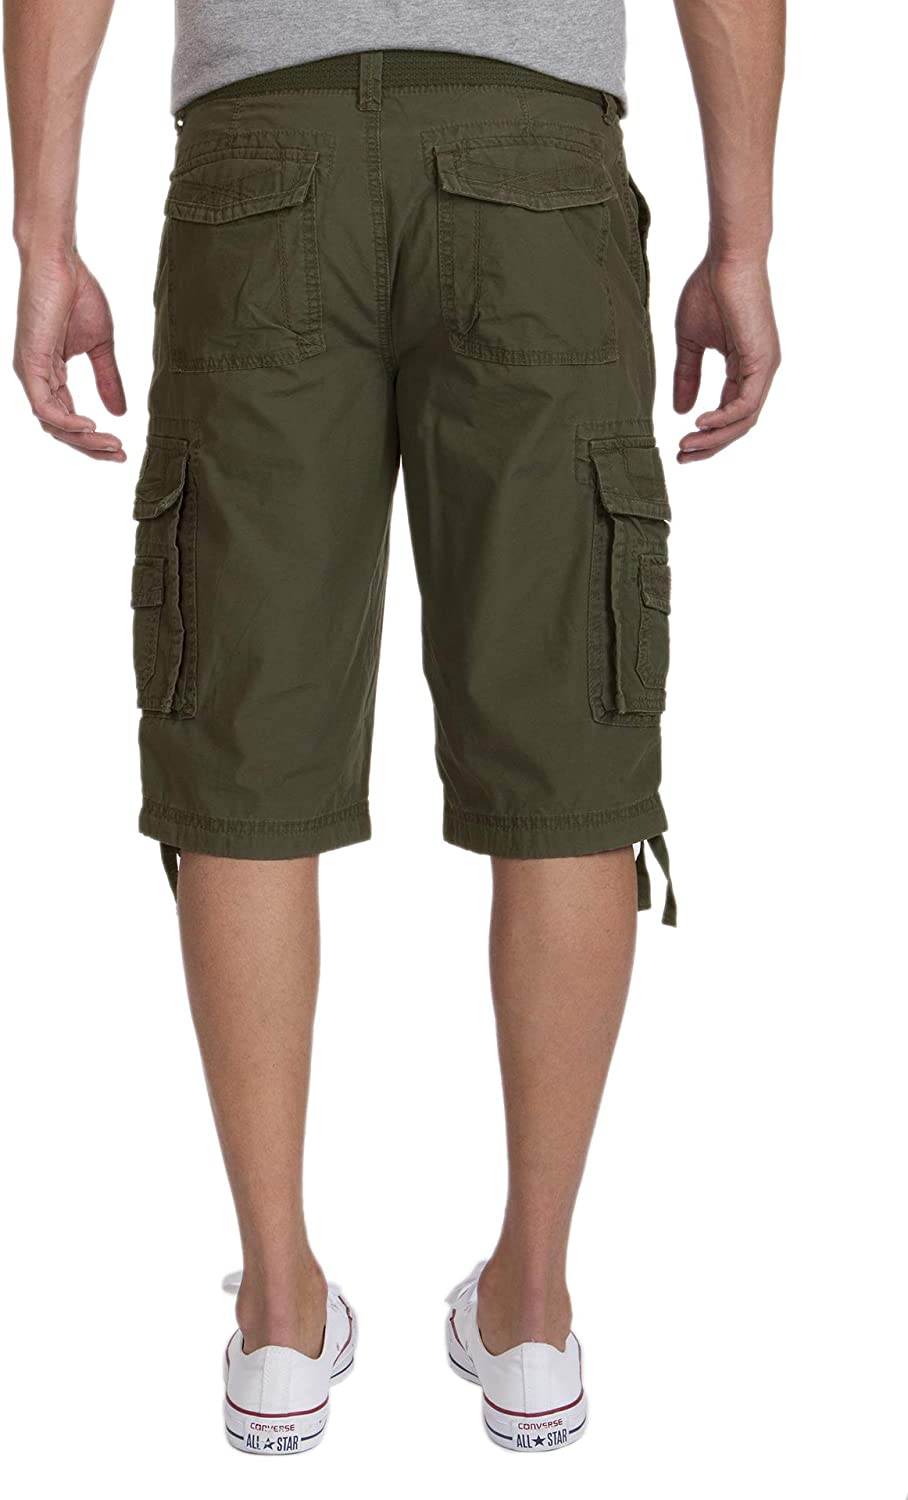 UNIONBAY Men's Cordova Belted Messenger Cargo Short - Reg and Big and Tall Sizes Military